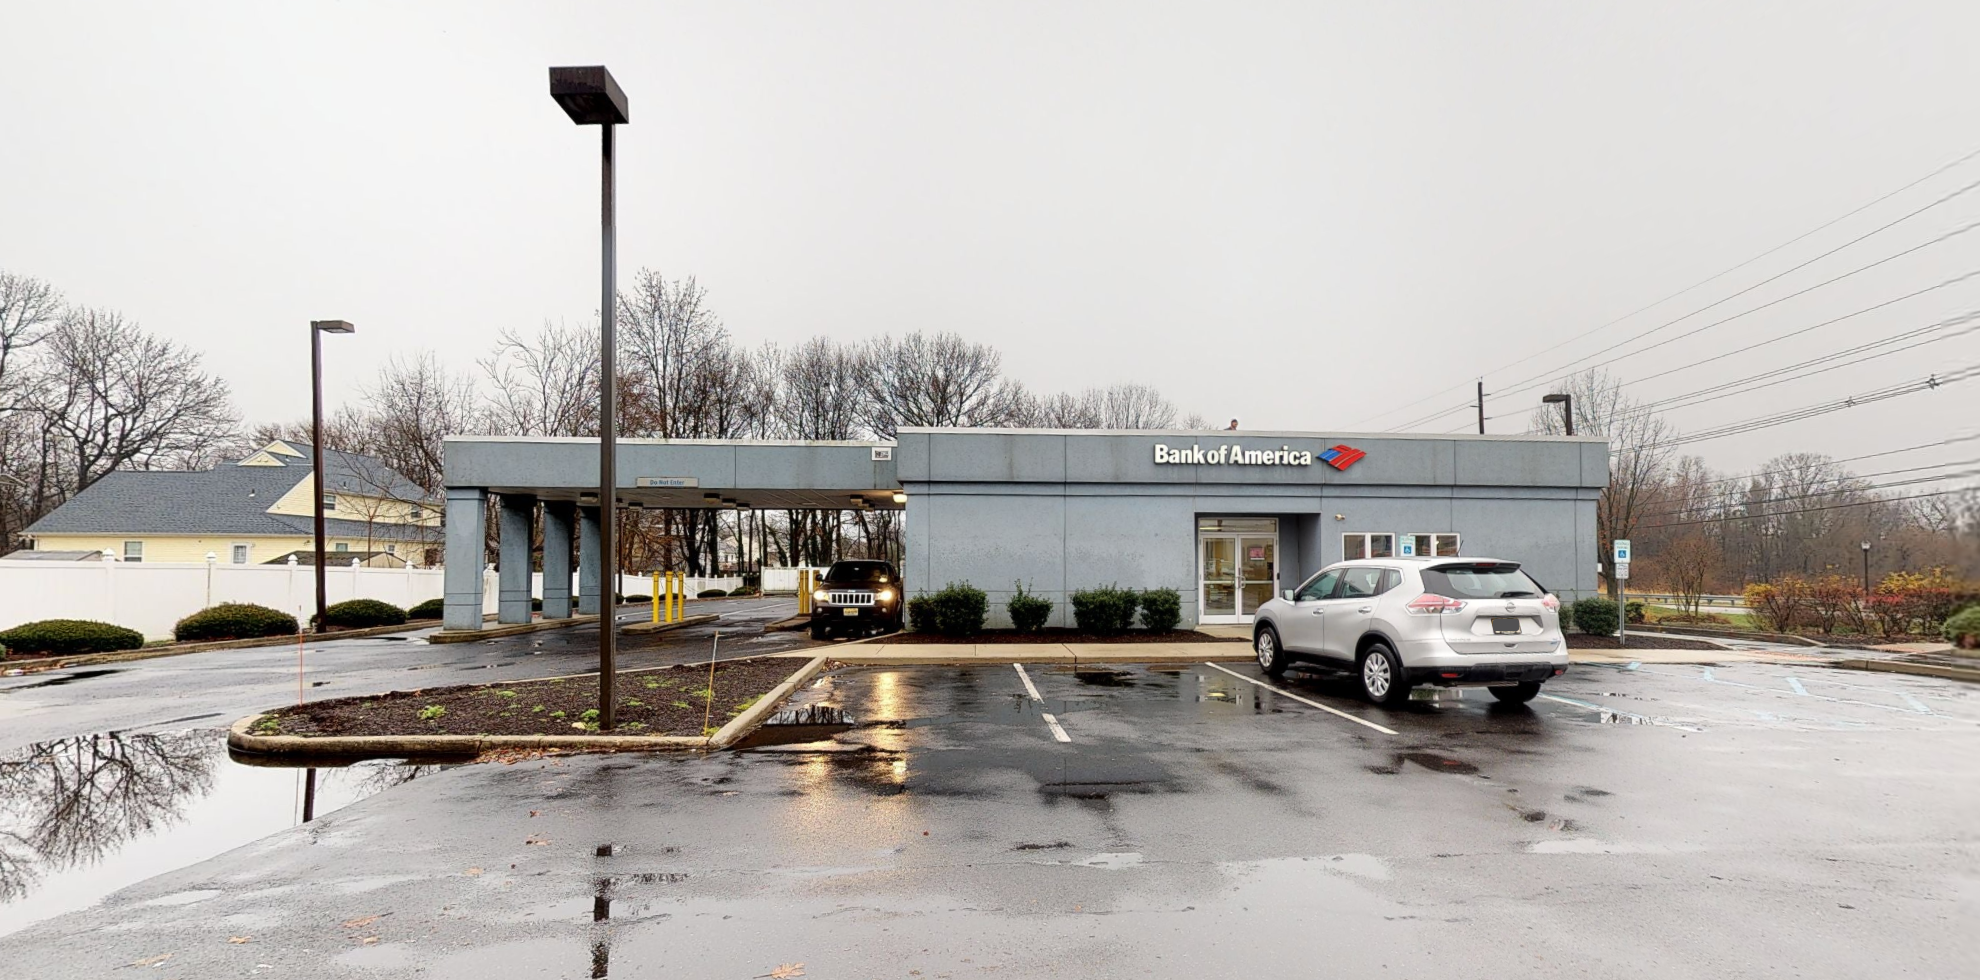 Bank of America financial center with drive-thru ATM | 1355 Delsea Dr, Woodbury, NJ 08096